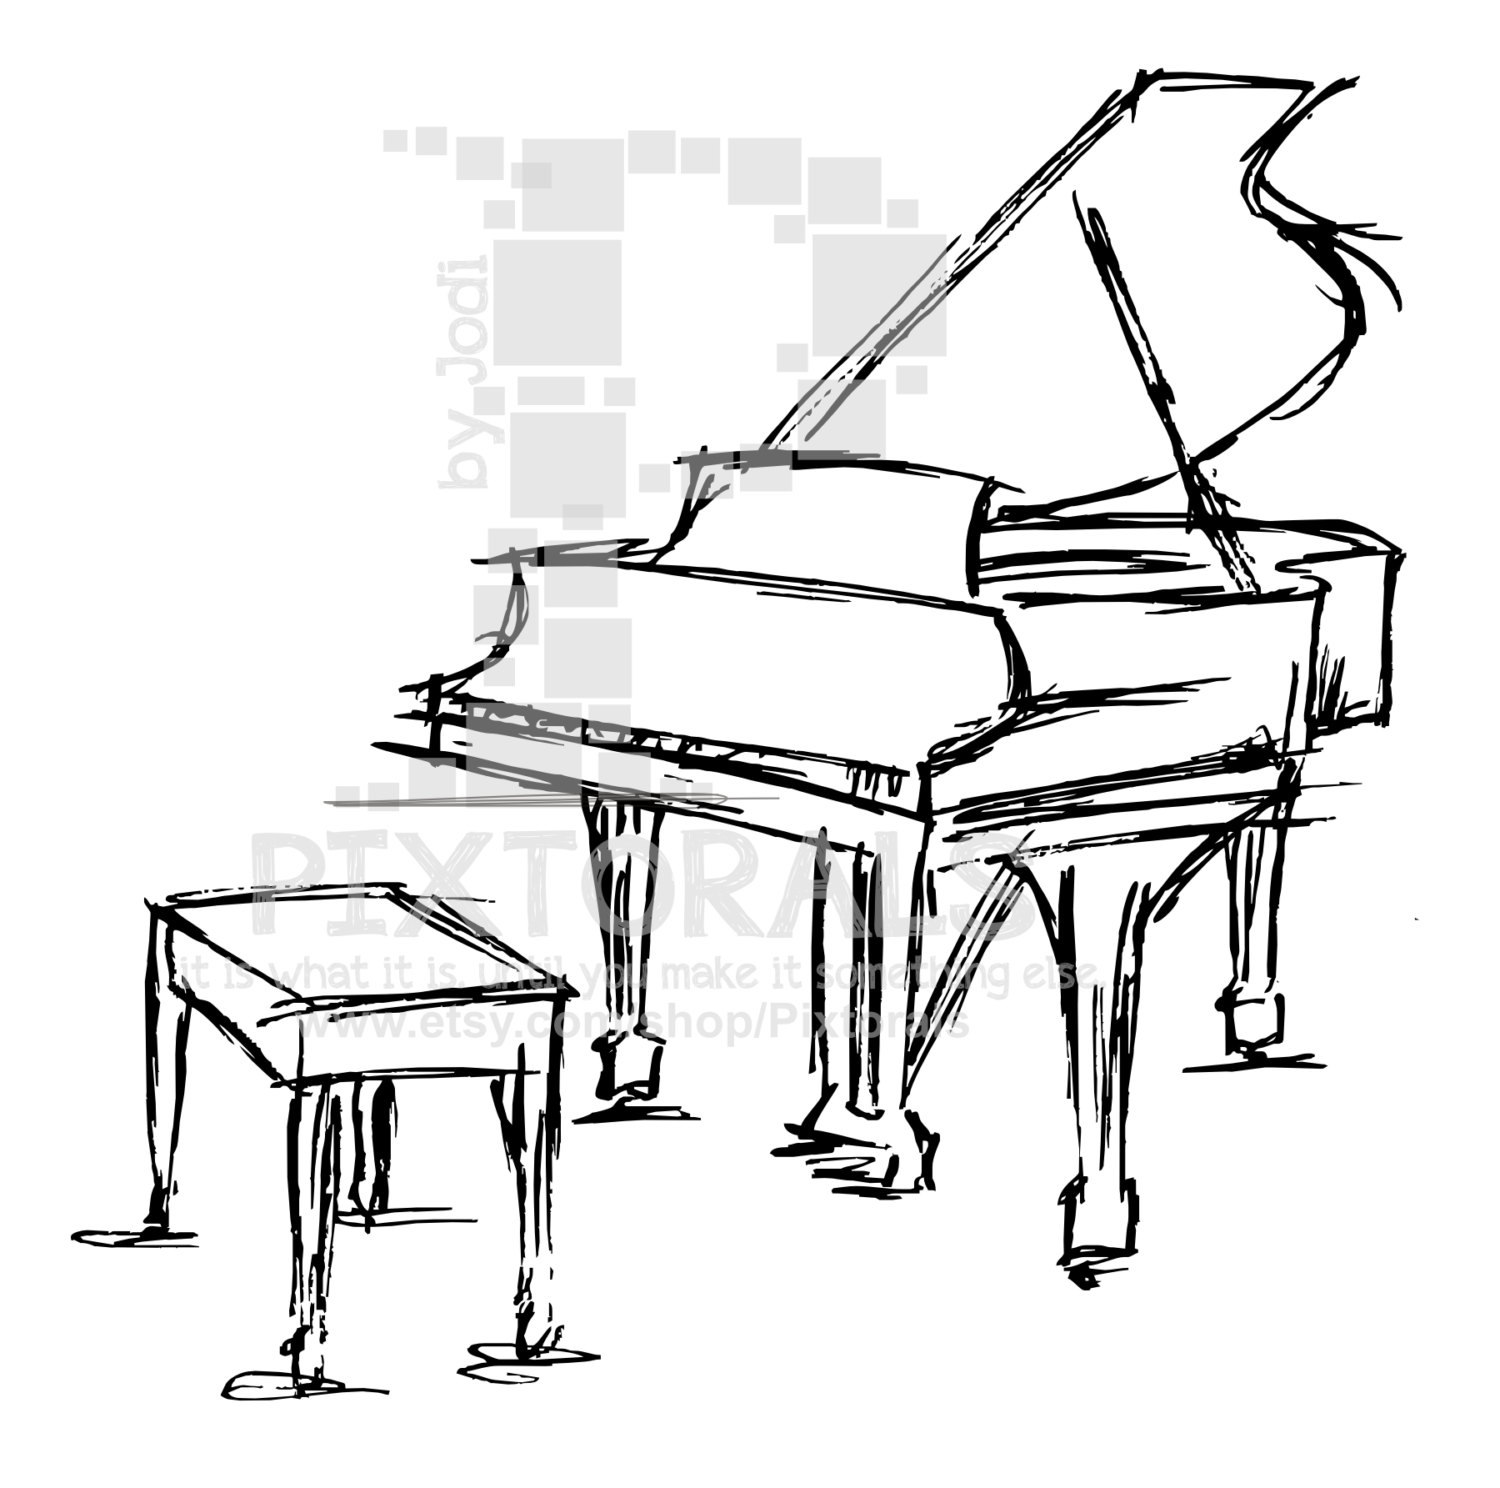 how to draw a grand piano grand piano drawing free download on clipartmag piano how to draw grand a